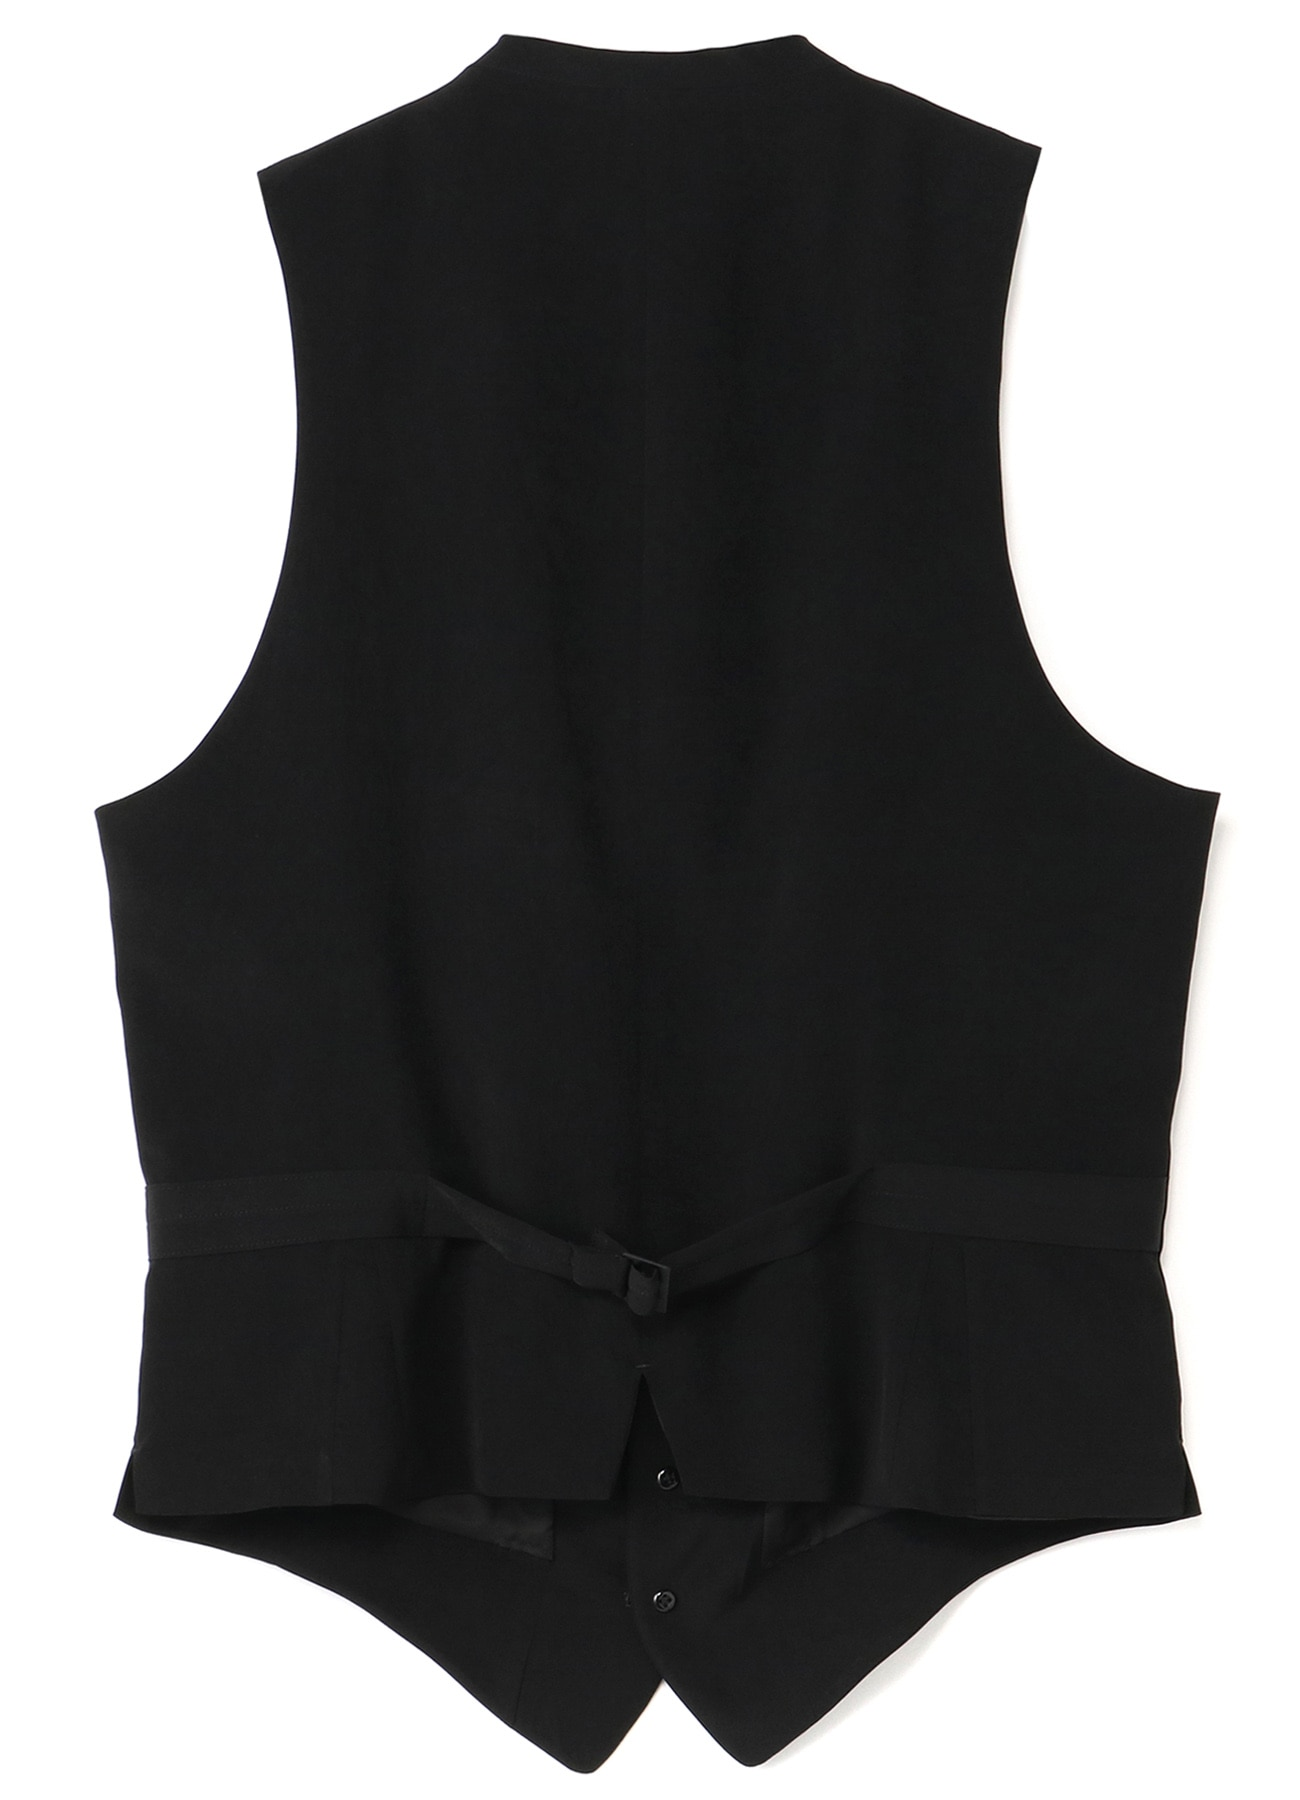 TUXEDO 7BUTTON SINGLE VEST